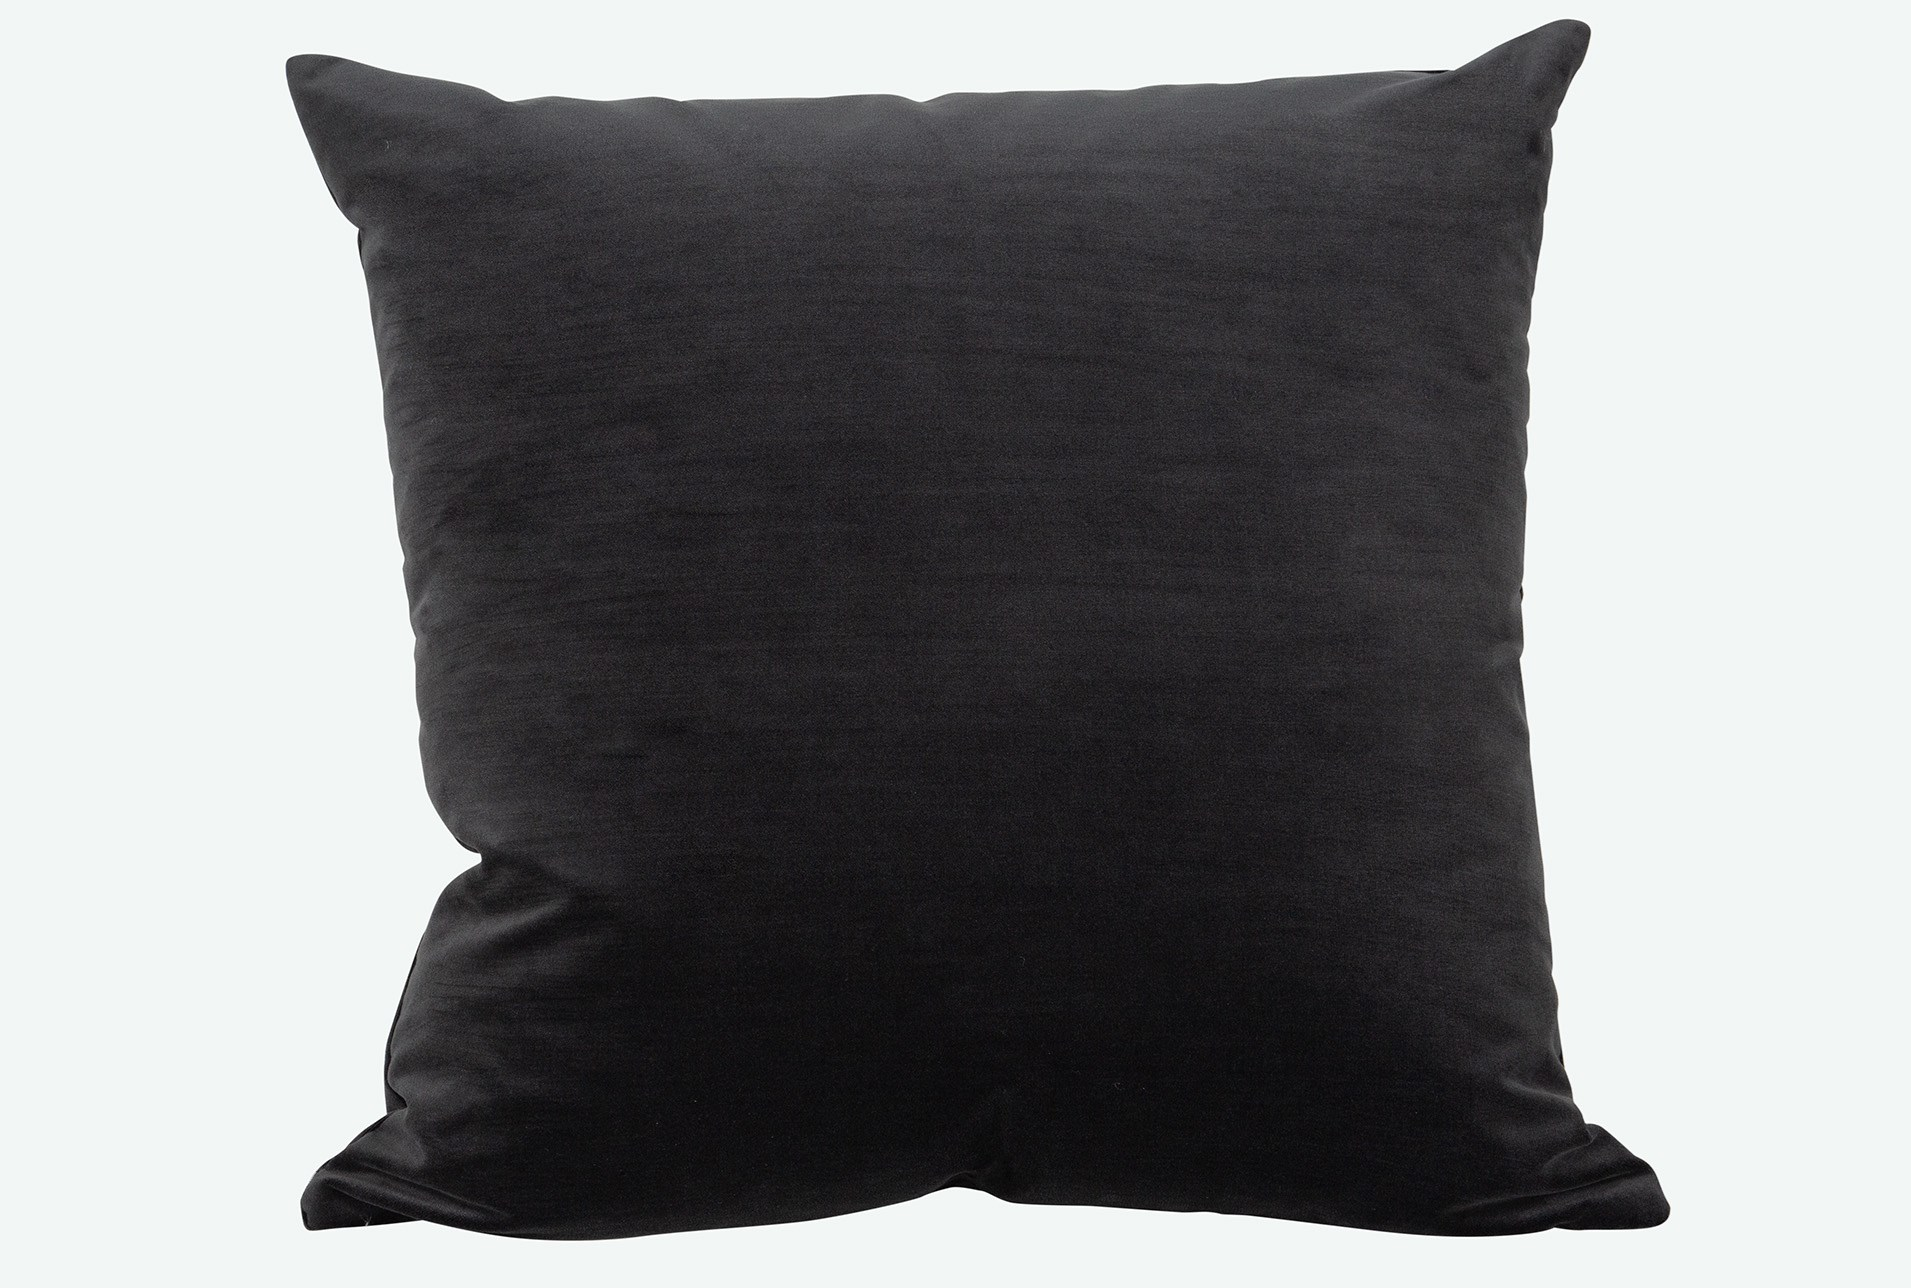 Accent Pillow Monaco Coal 22x22 By Nate Berkus And Jeremiah B Qty 1 Has Been Successfully Added To Your Cart